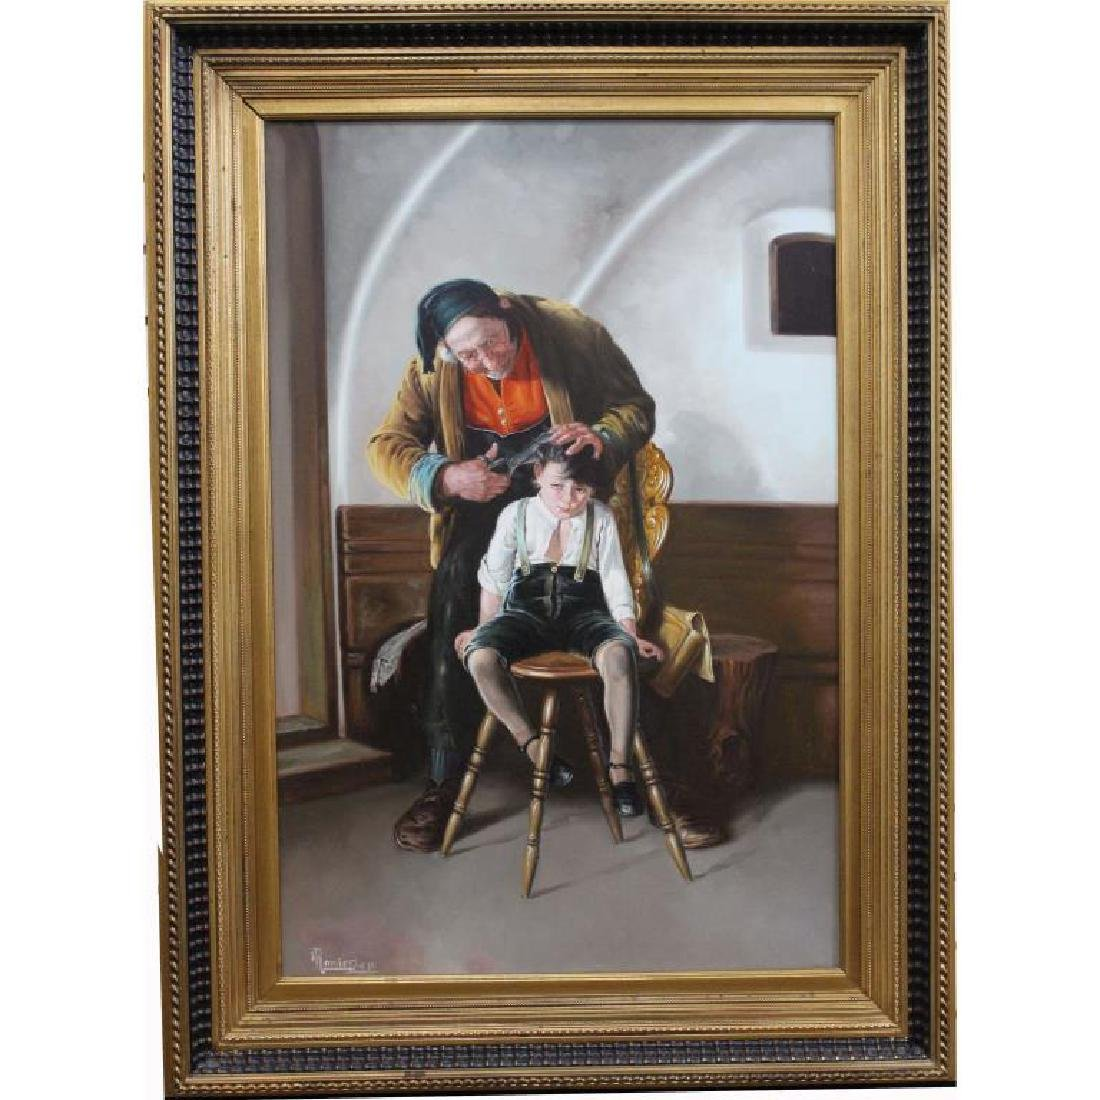 Large Painting of A Barber & Young Boy